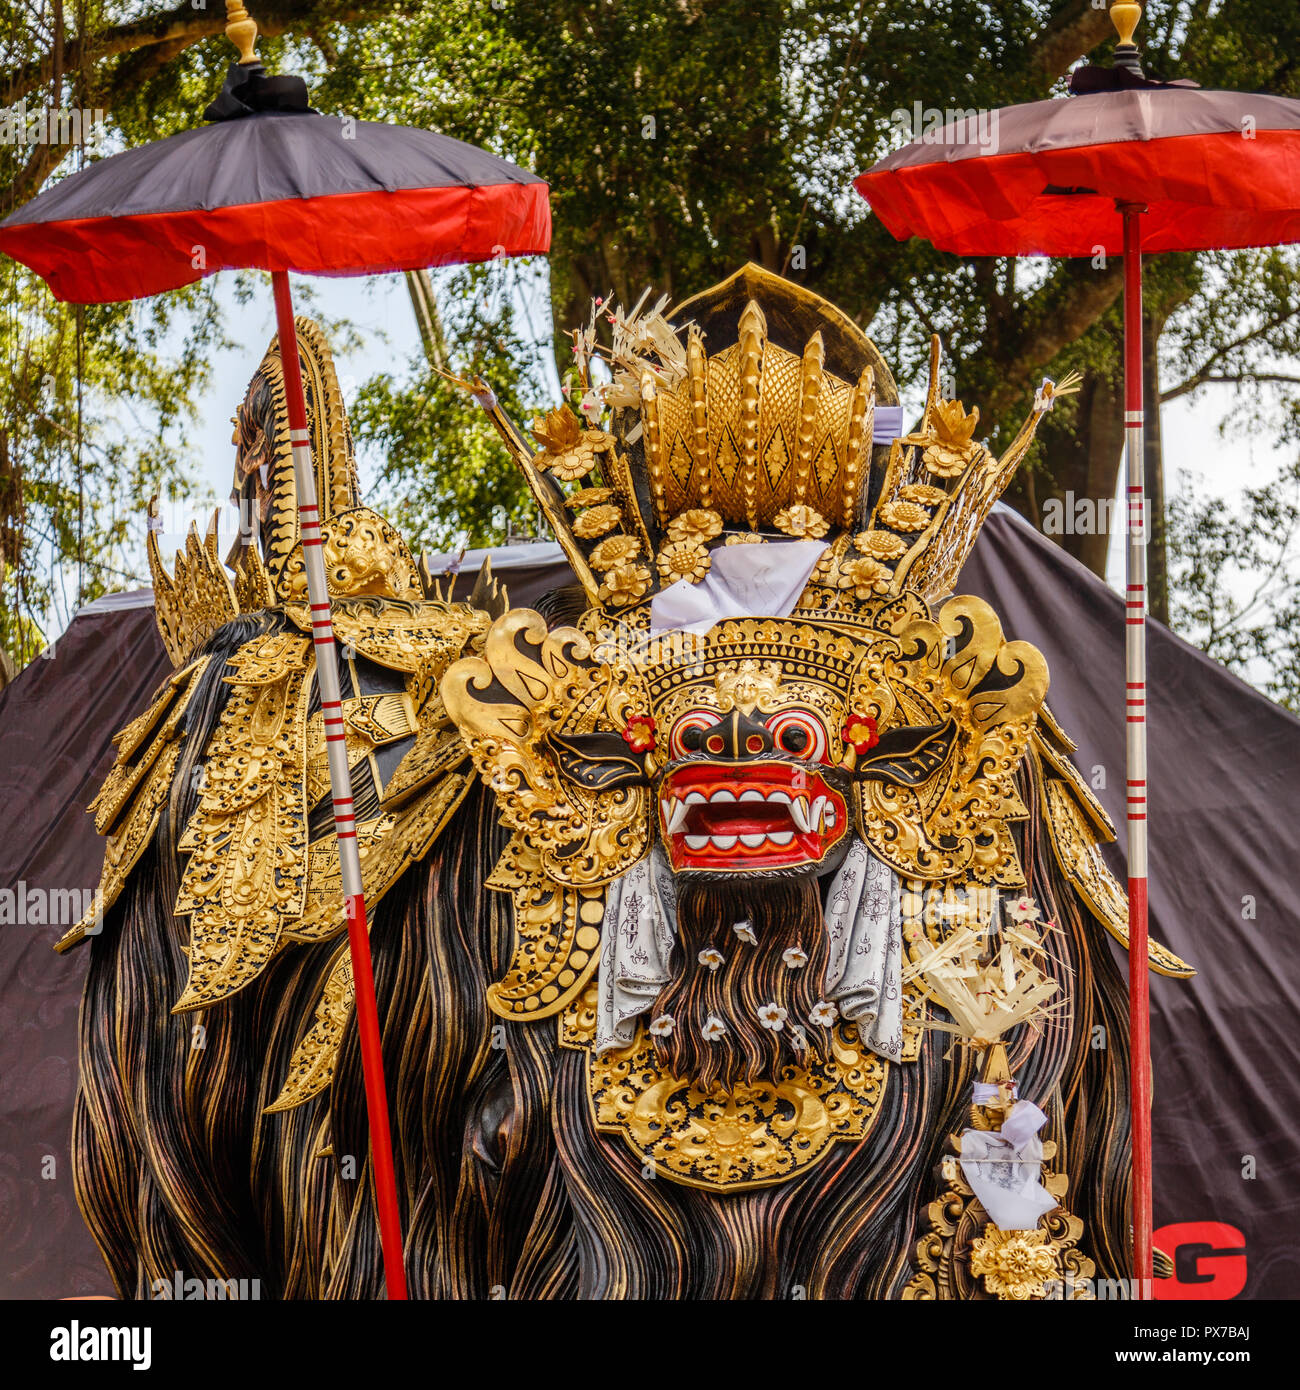 barong bali lion high resolution stock photography and images alamy https www alamy com barong ket balinese hindu mythology character bali indonesia image222668058 html